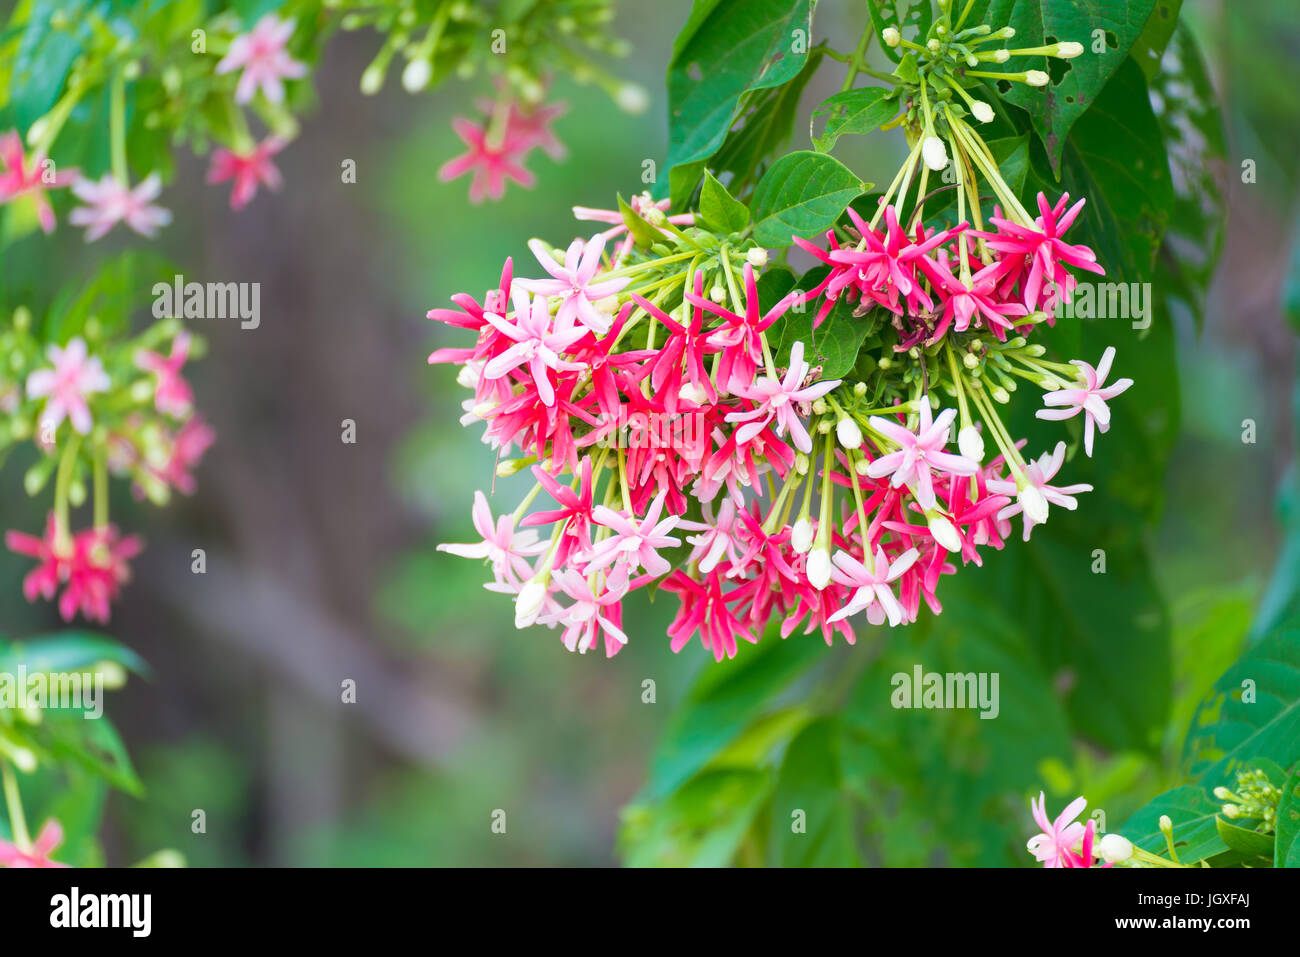 Thai small pink flowers blossom quisqualis indica flower plant thai small pink flowers blossom quisqualis indica flower plant chinese honeysuckle rangoon creeper or combretum indicum shallow focus mightylinksfo